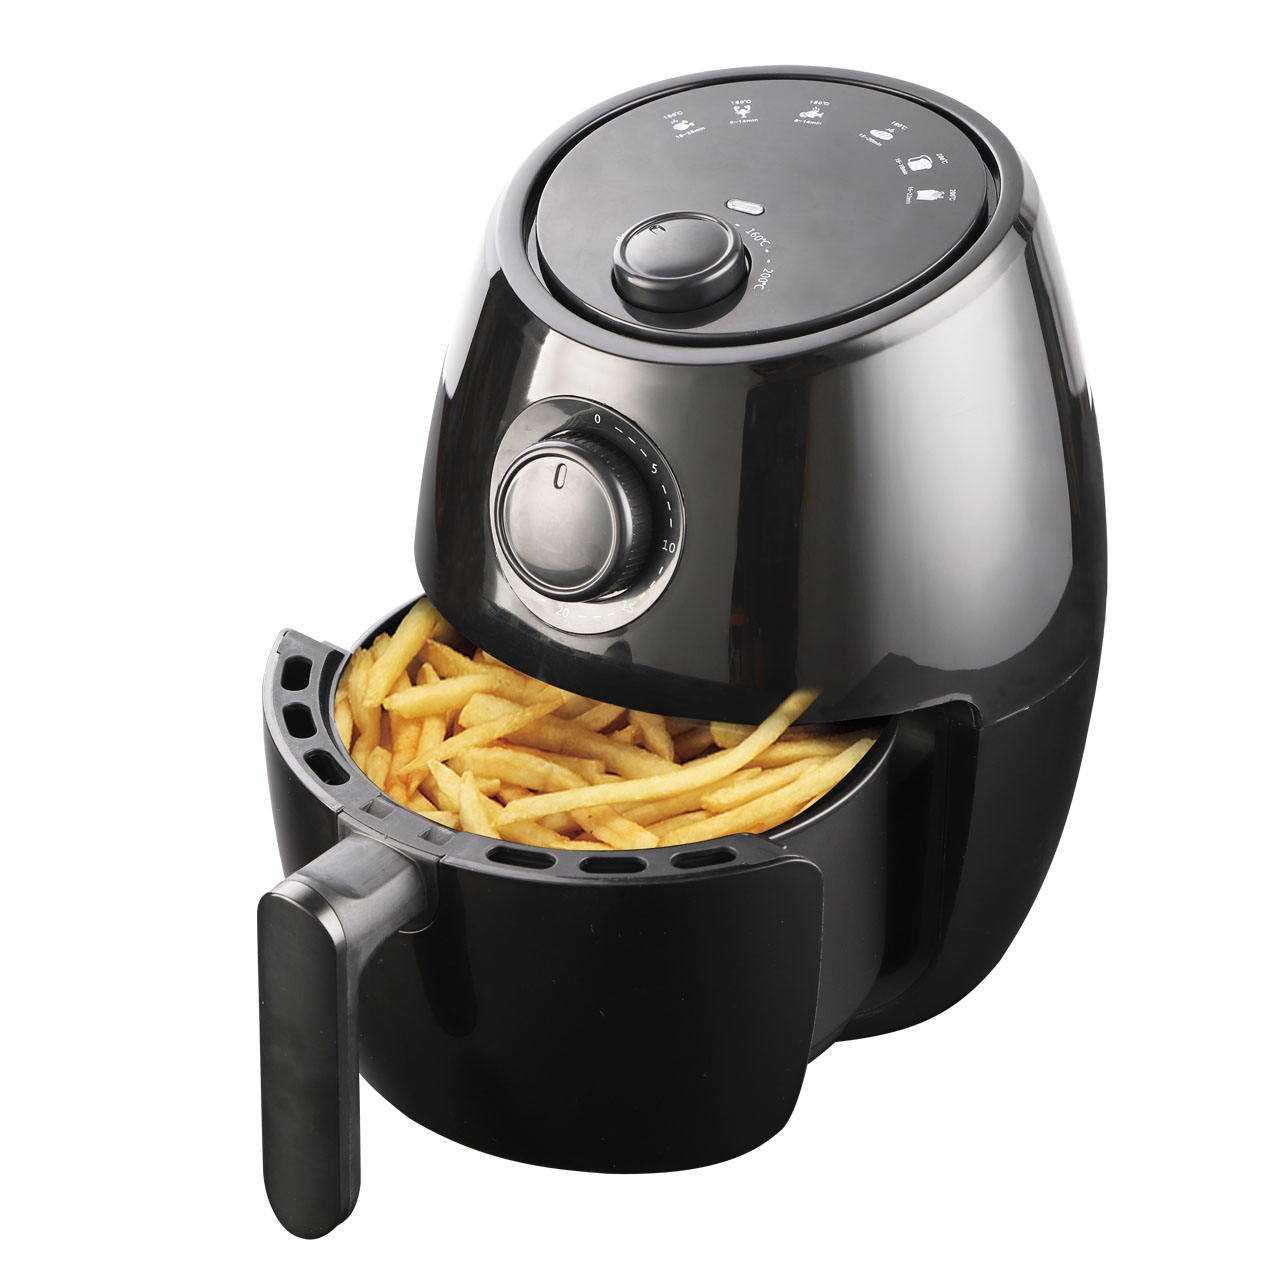 2.0L mini air fryer frying food without oil fast food frying machine